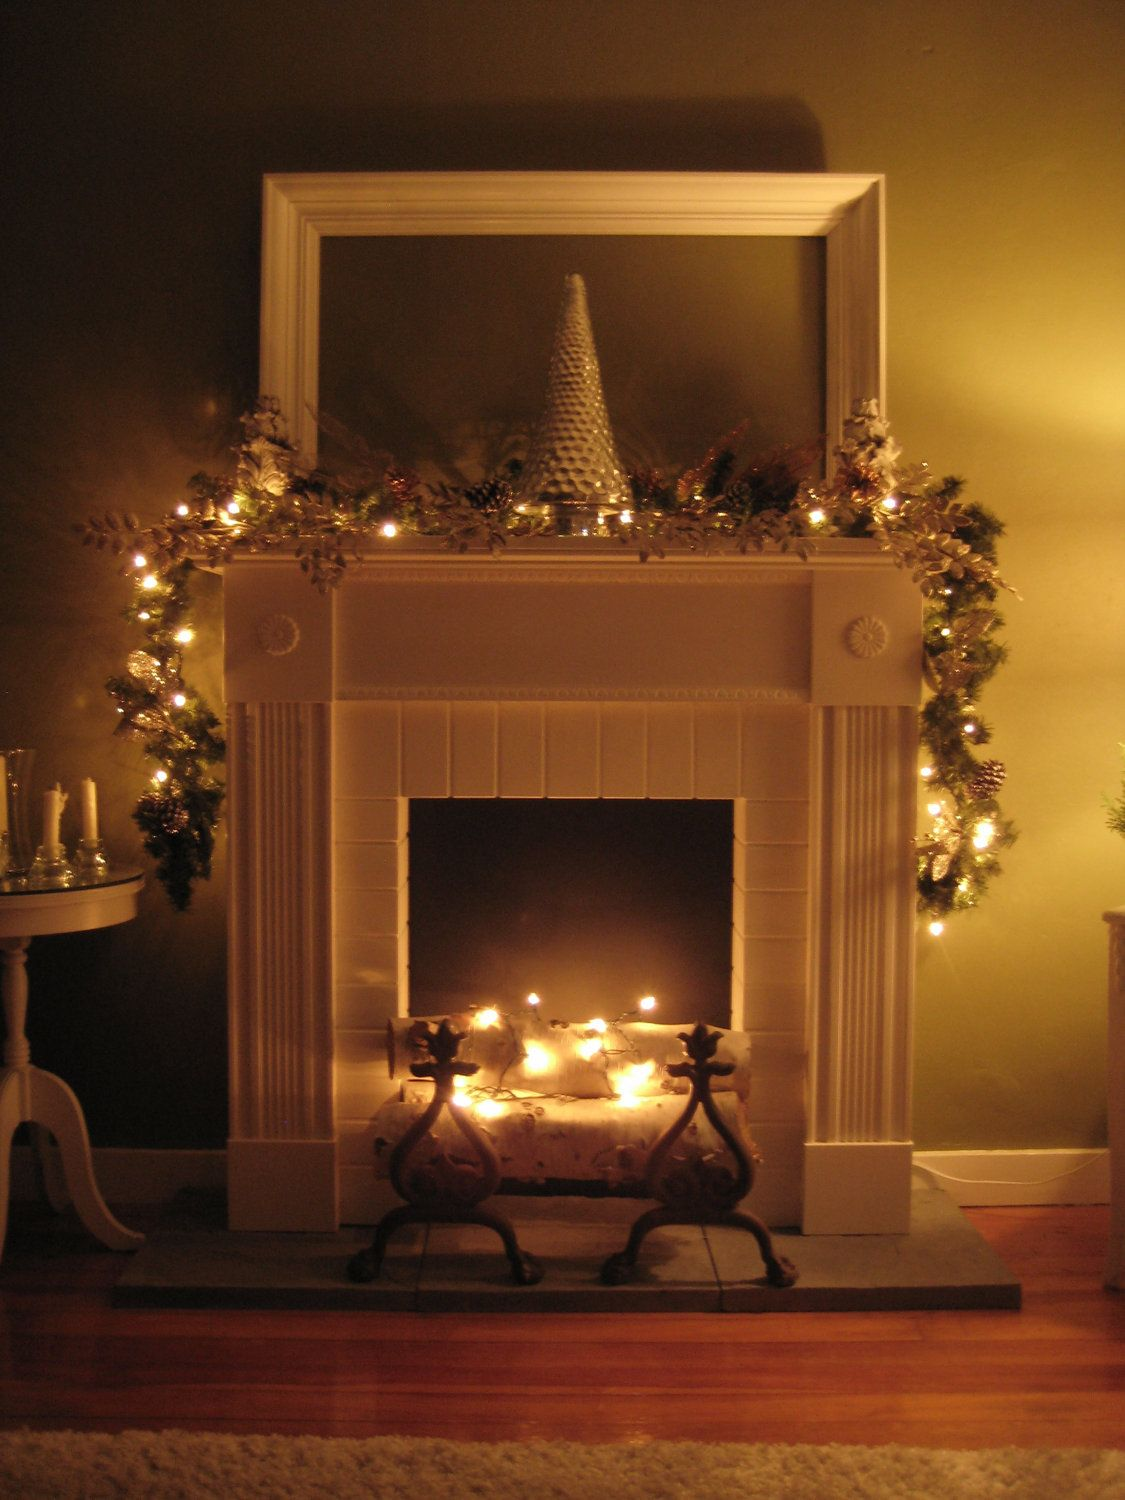 Faux Fireplace and Mantel in White $600 00 via Etsy